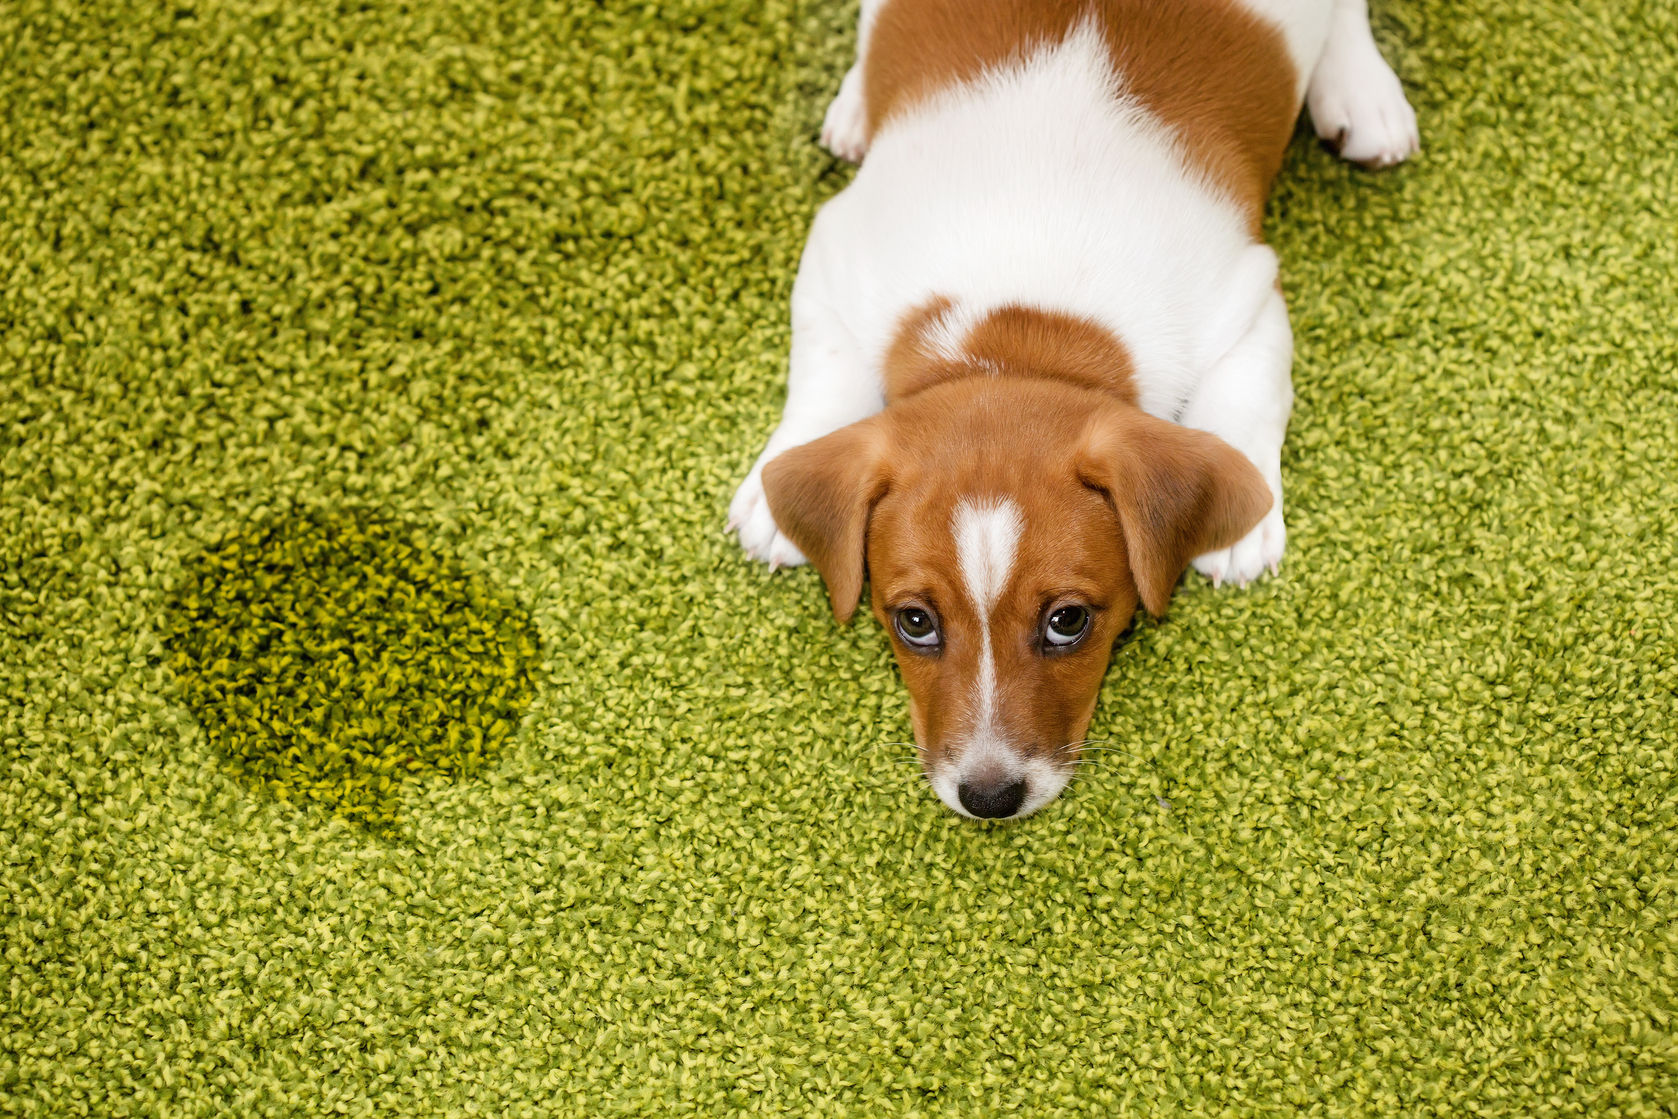 Can dogs pee and poop on artificial grass? We tell you the